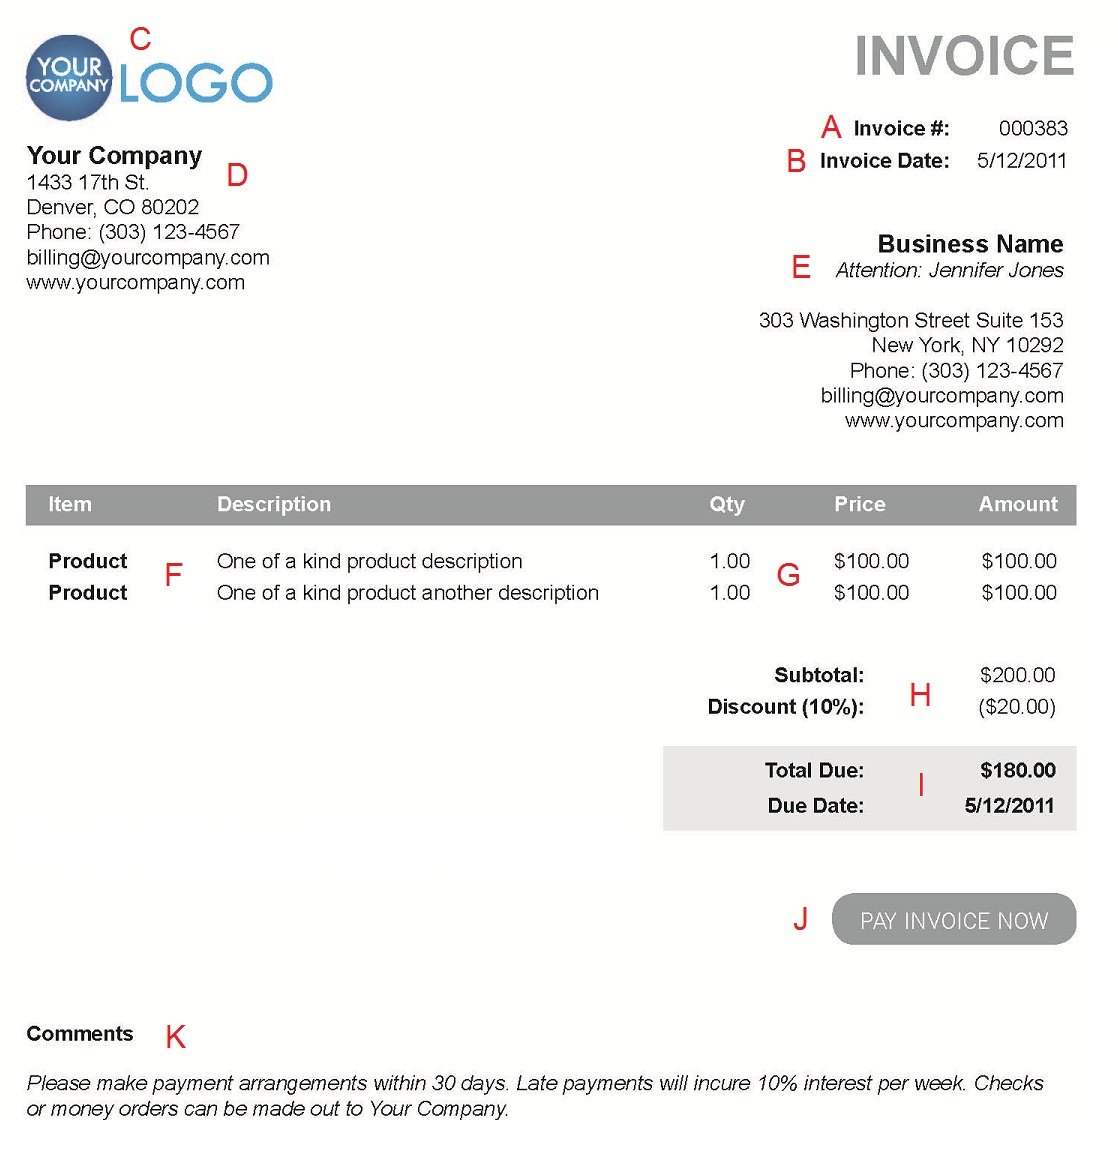 Massenargcus  Fascinating The  Different Sections Of An Electronic Payment Invoice With Gorgeous A  With Astonishing Invoice Payment Terms Also Invoice Software For Mac In Addition Paypal Invoice Scams And Sales Invoice Definition As Well As What Is An Ebay Invoice Additionally Plumbing Invoice From Paysimplecom With Massenargcus  Gorgeous The  Different Sections Of An Electronic Payment Invoice With Astonishing A  And Fascinating Invoice Payment Terms Also Invoice Software For Mac In Addition Paypal Invoice Scams From Paysimplecom